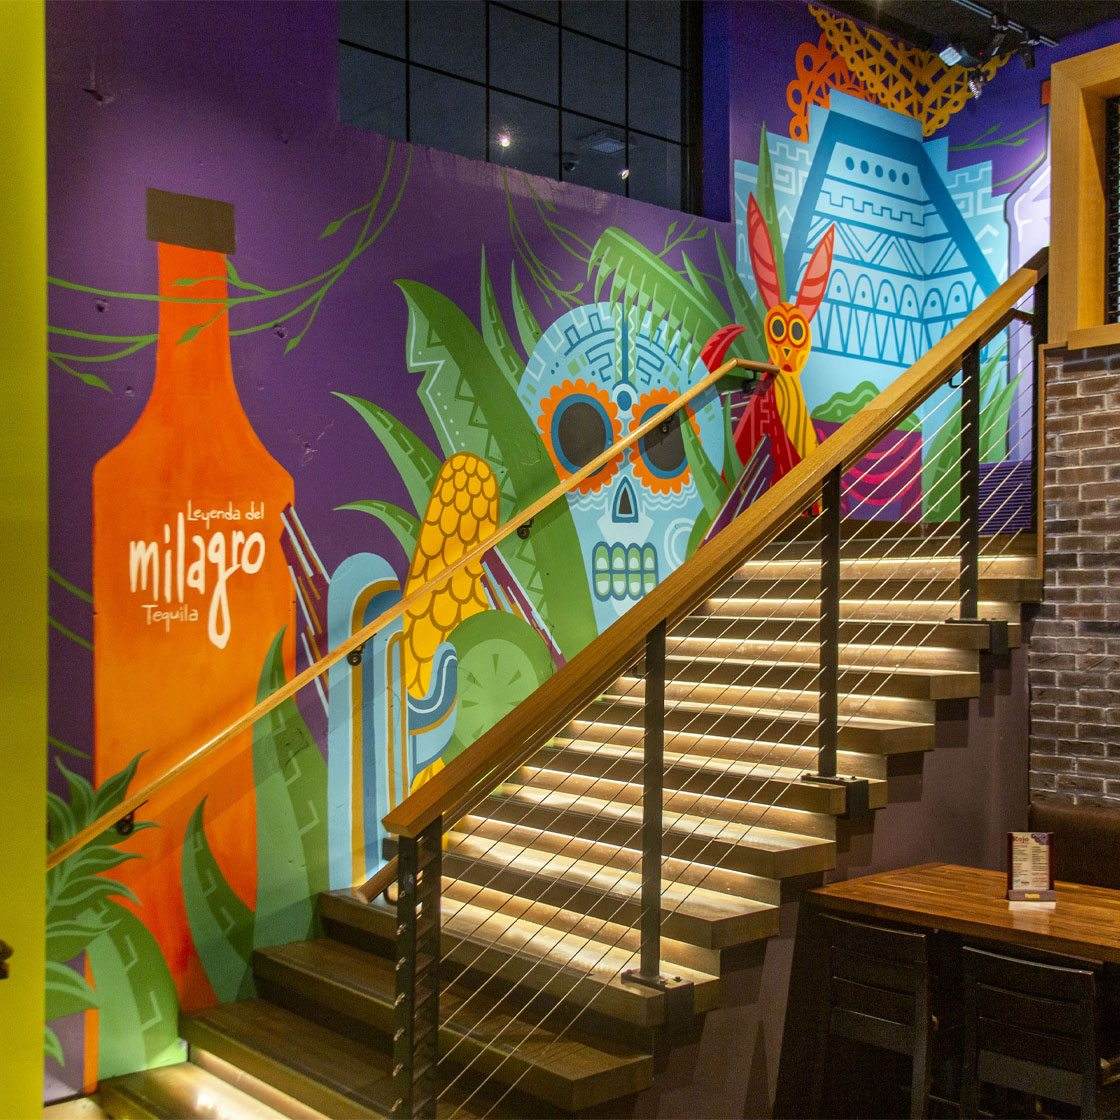 A colorful graphically illustrated mural inside a restaurant